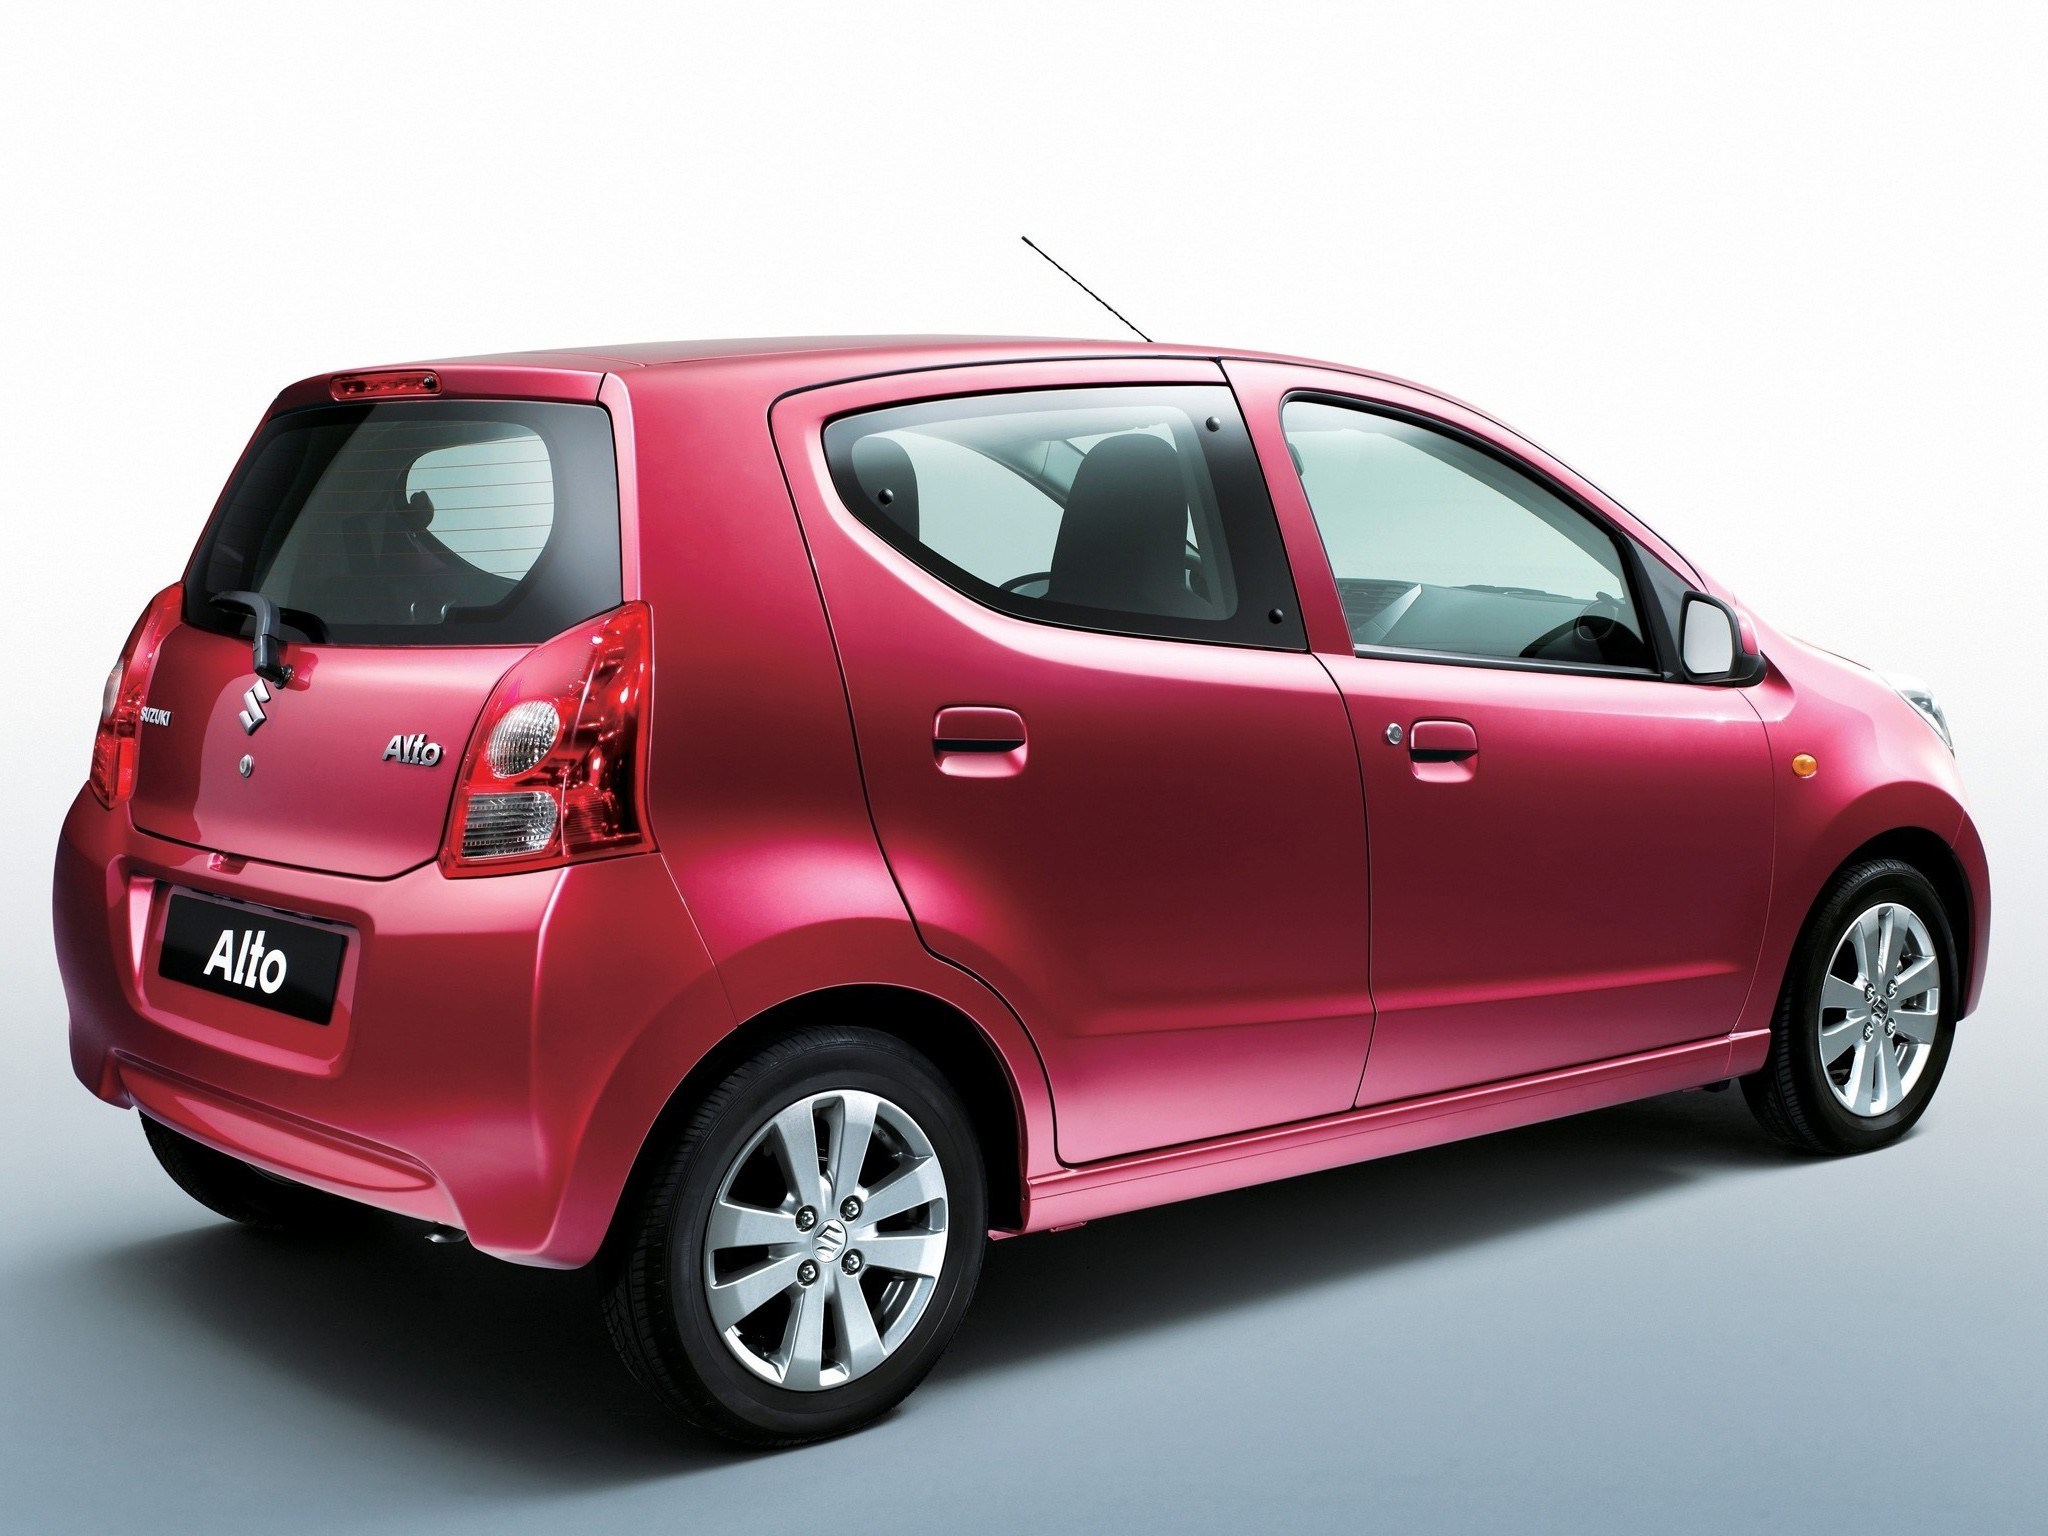 Suzuki Alto 2009 on 1 liter three cylinder engine